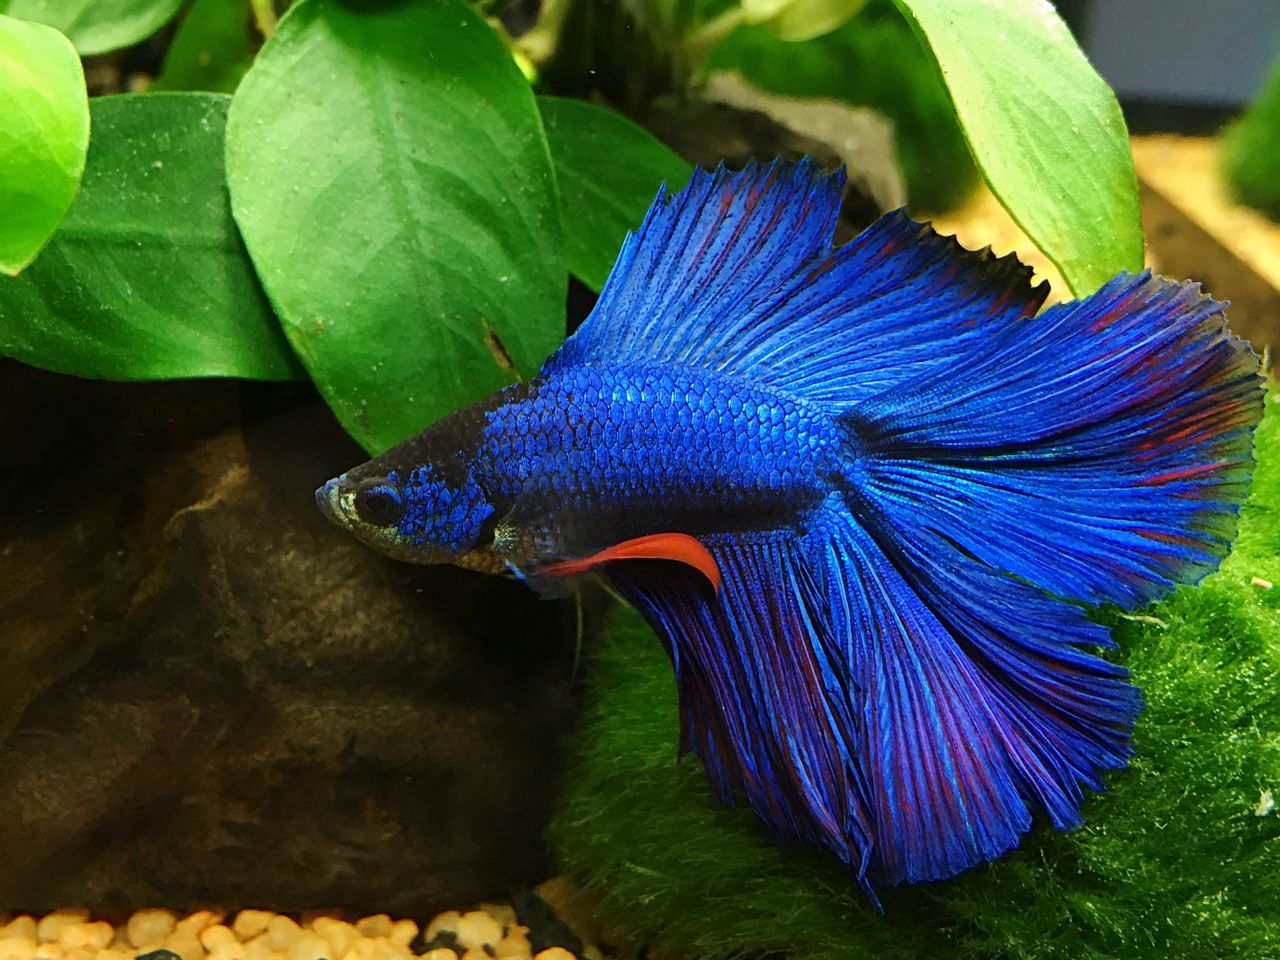 Betta Splendens Betta Fish Betta  Bettafish Betta Lovers Betta Splendens Pesce Combattente Fresh Water Fish Fish Fishes Acquarium Aquarium Acquario Aquarium Life Fresh Water Aquarium Fresh Water Close Up Close-up Nature Animal Animals Pesce Pesci